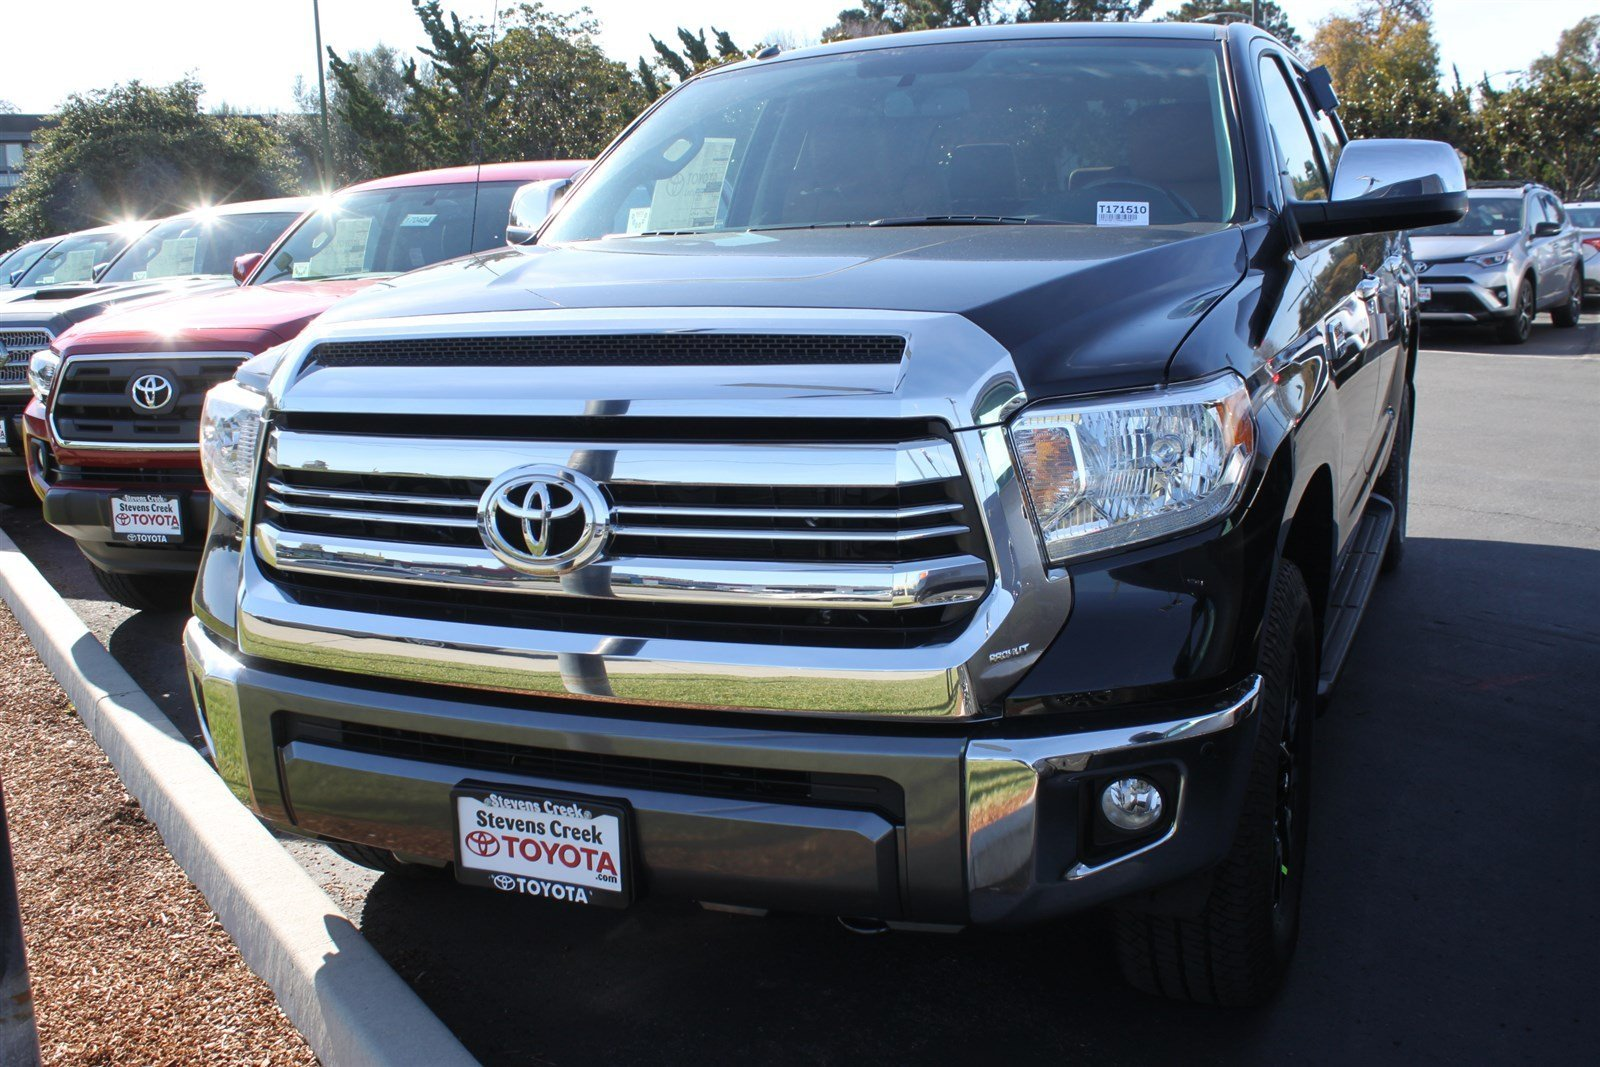 new 2017 toyota tundra 1794 edition crewmax in san jose t171510 stevens creek toyota. Black Bedroom Furniture Sets. Home Design Ideas